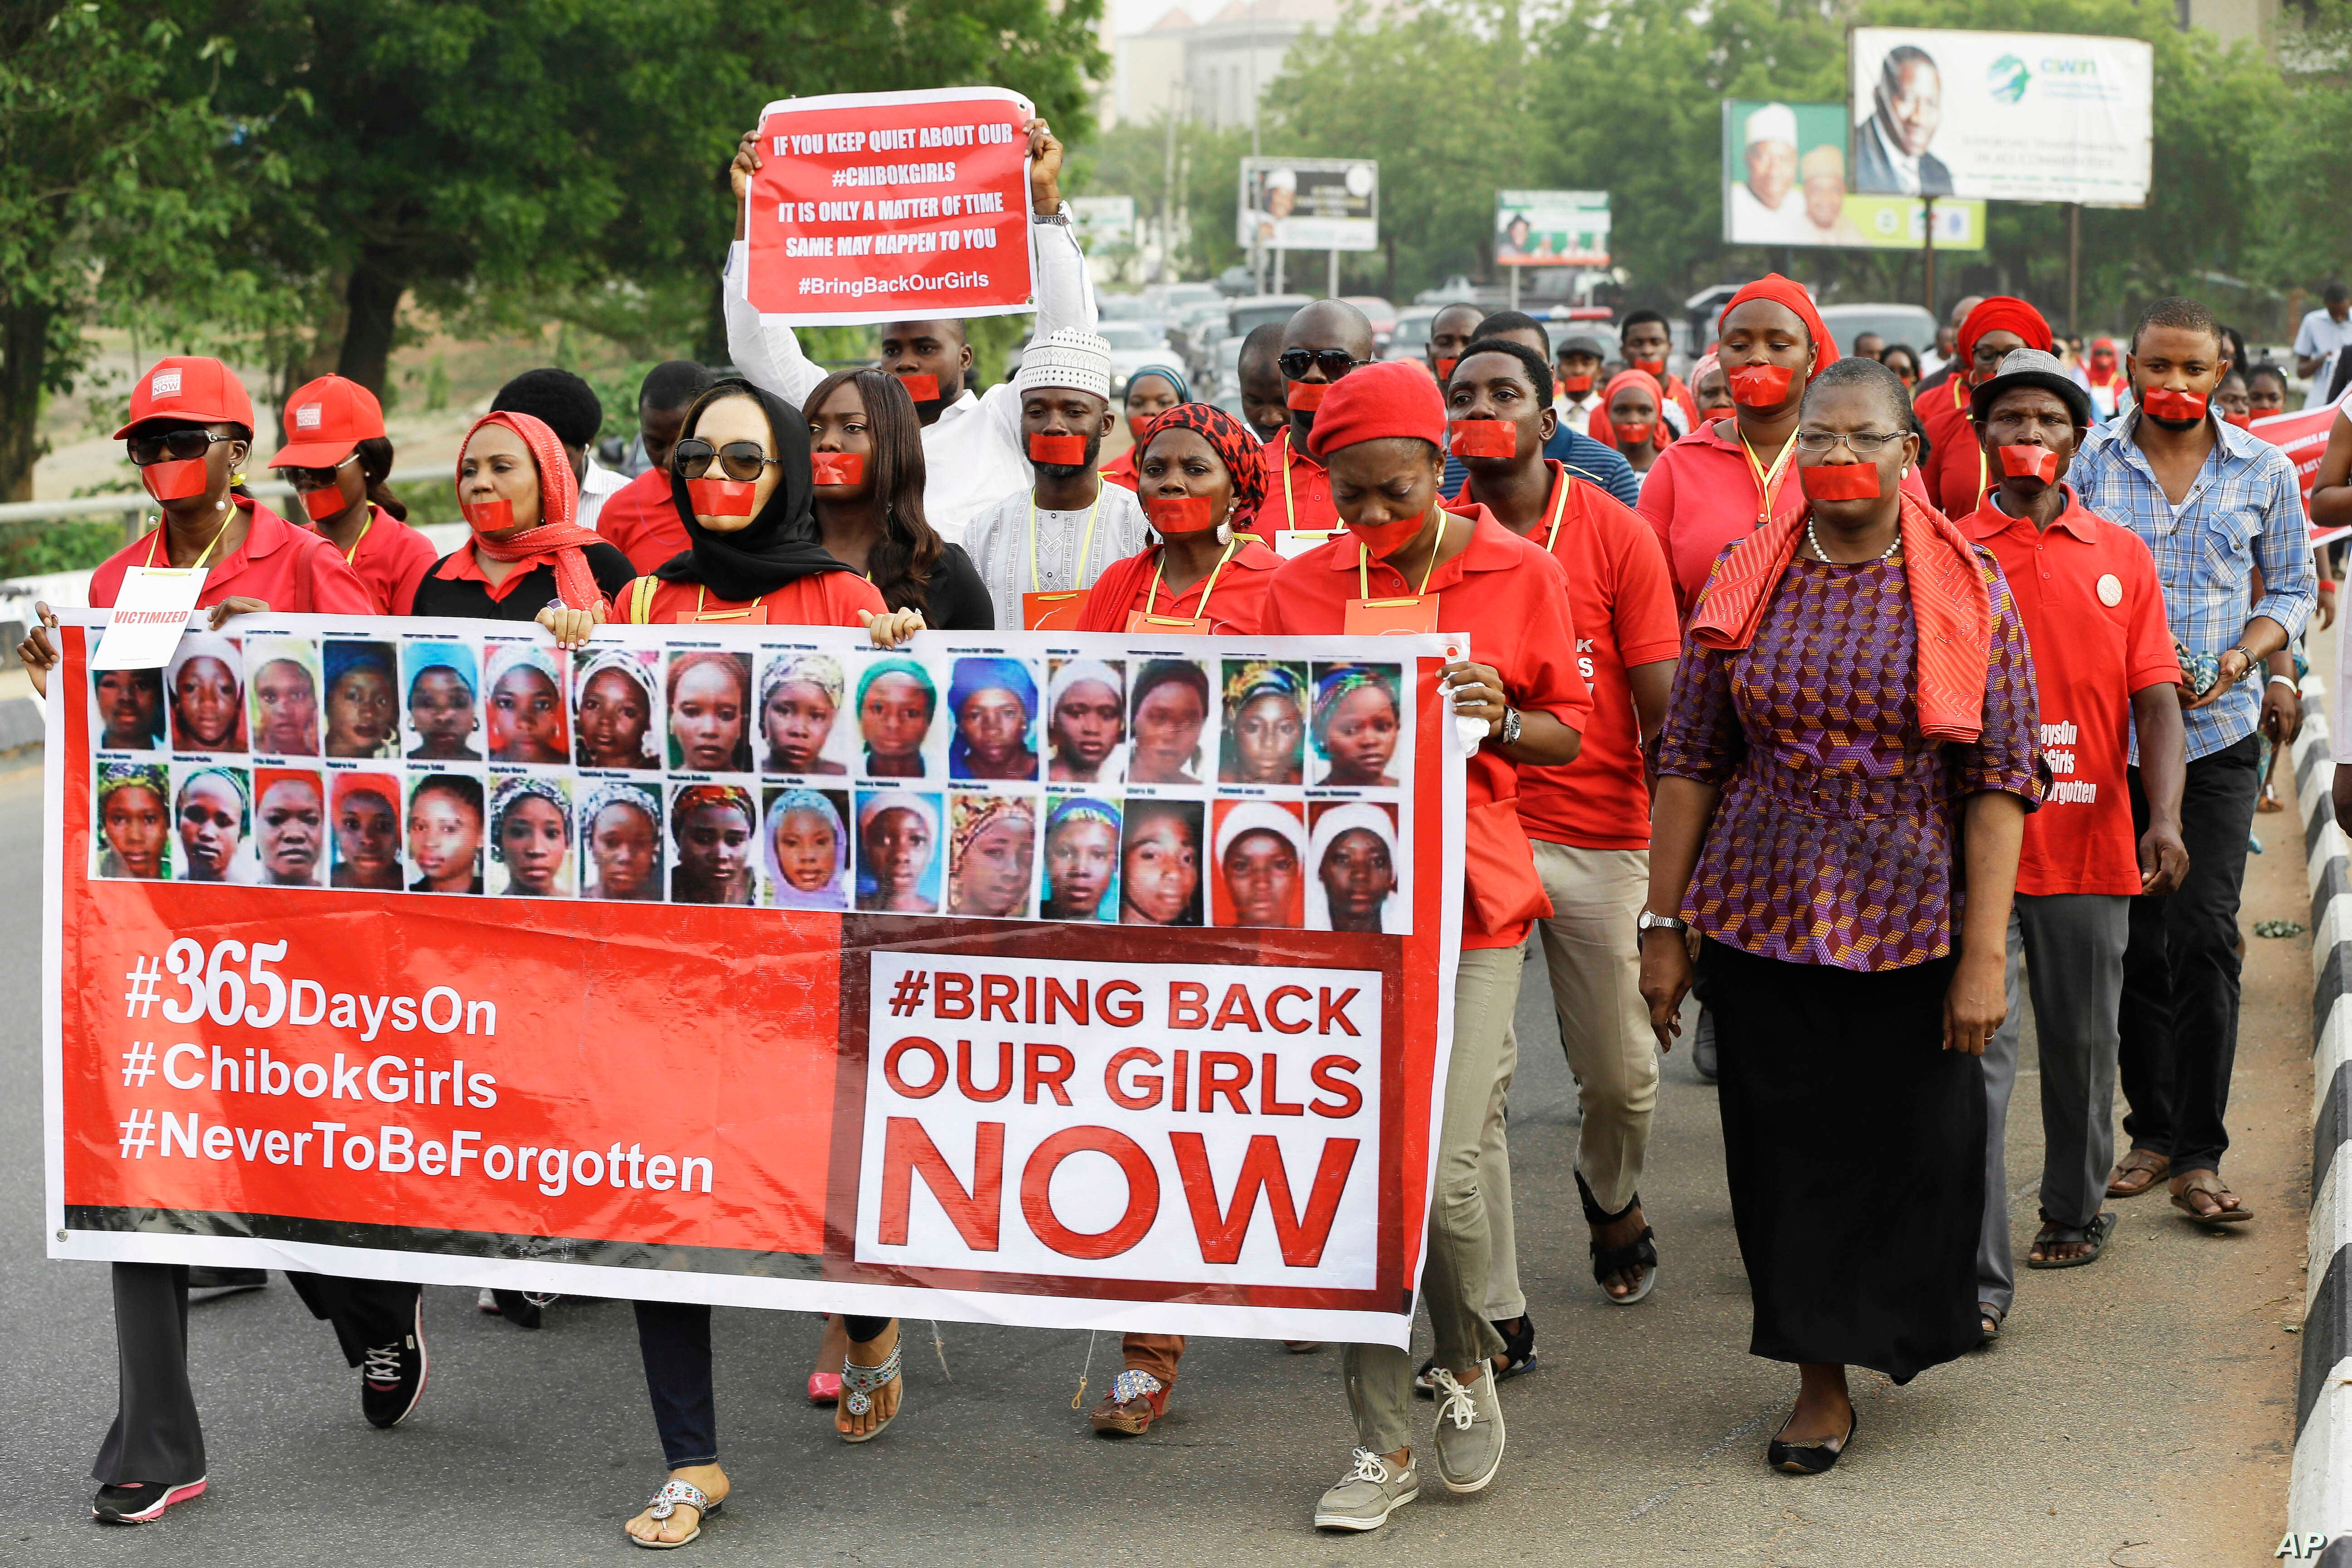 People march in a silent protest calling on the government to rescue the kidnapped girls of the government secondary school in Chibok, who were abducted a year ago, in Abuja, Nigeria, April 13, 2015.